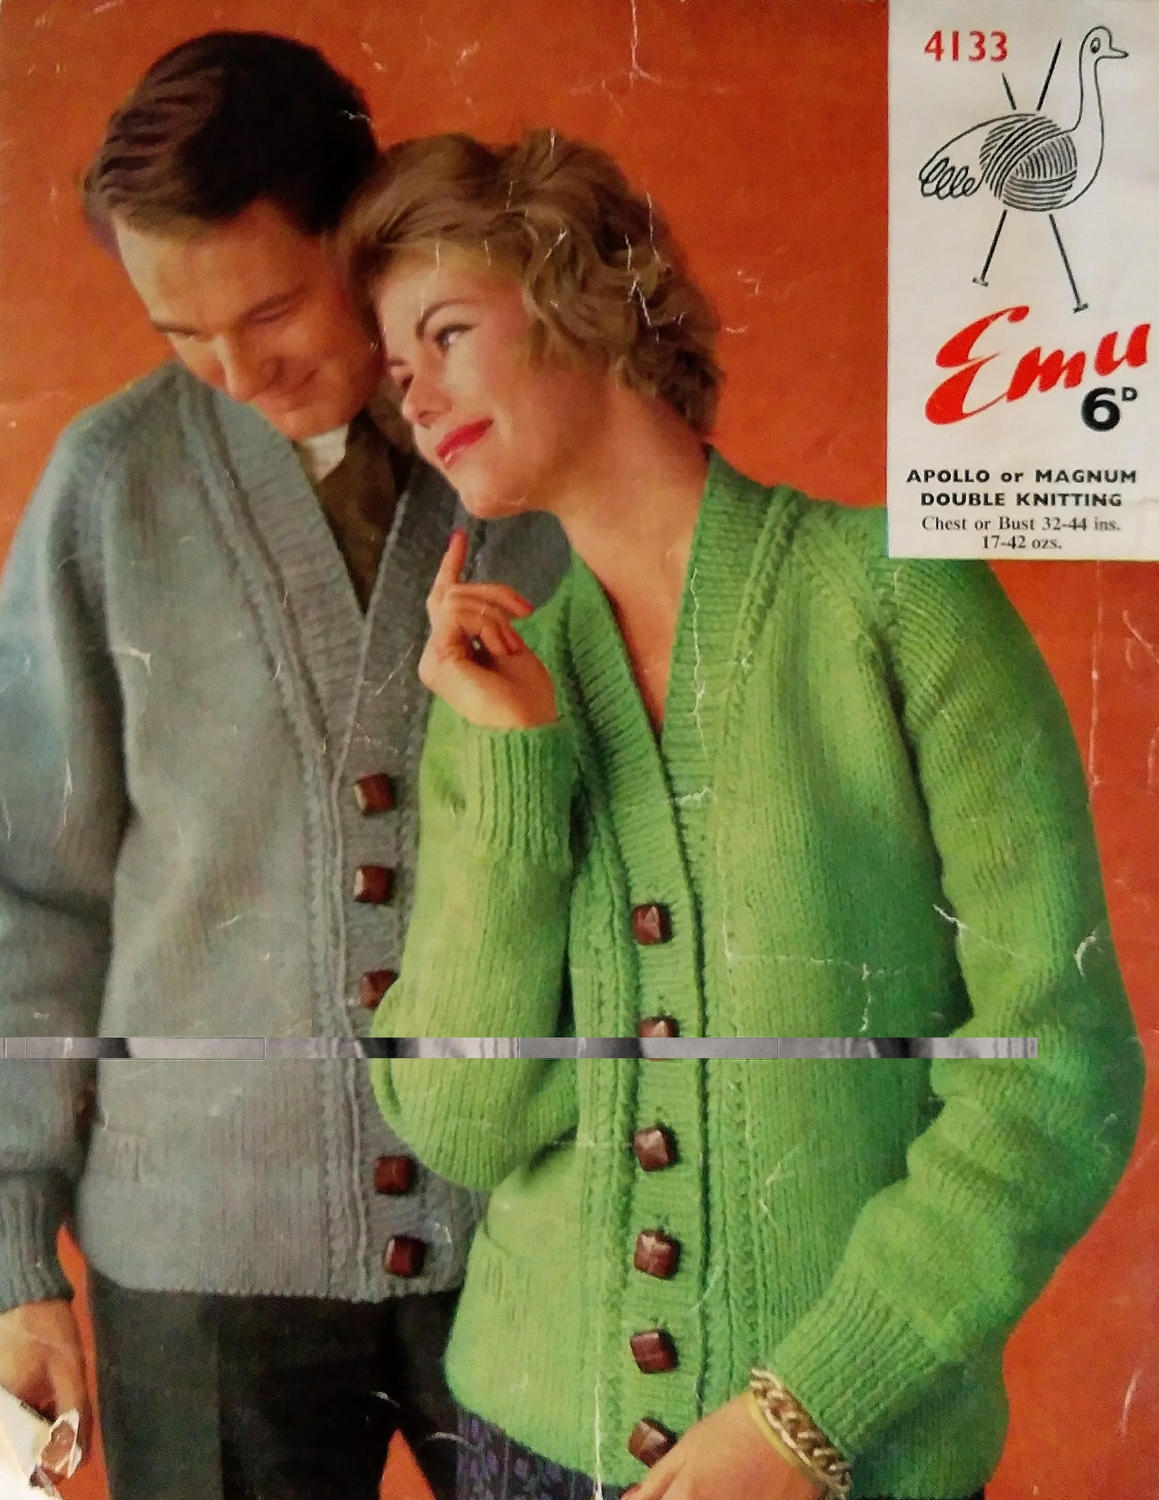 Knitted Coat Patterns Emu His Hers Knitted Jackets Vintage Knitted Jackets Knitting Patterns Knitted Cardigans Collectable Knitting Knitting Vintage Knits